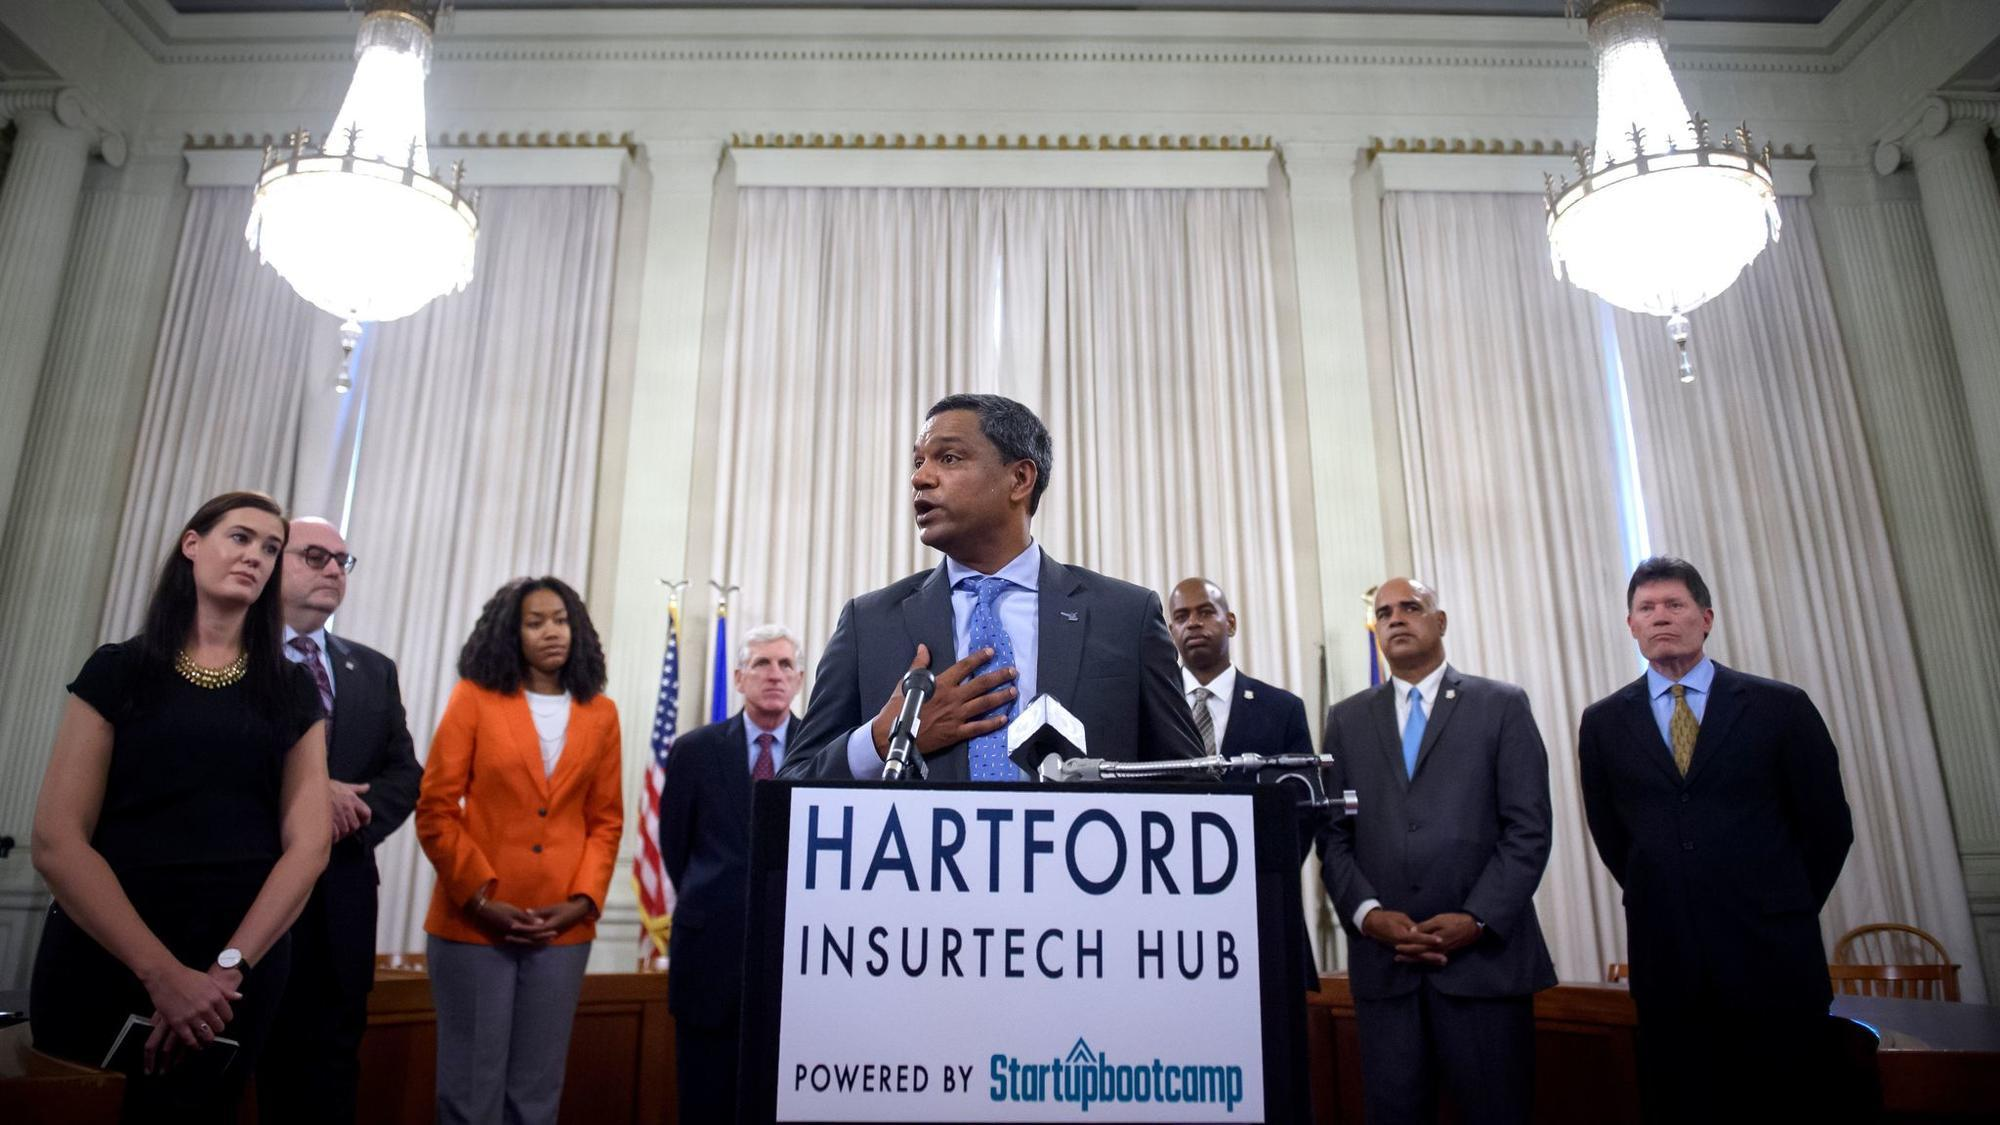 Hartford InsurTech Hub Opens Doors For First Hackathon